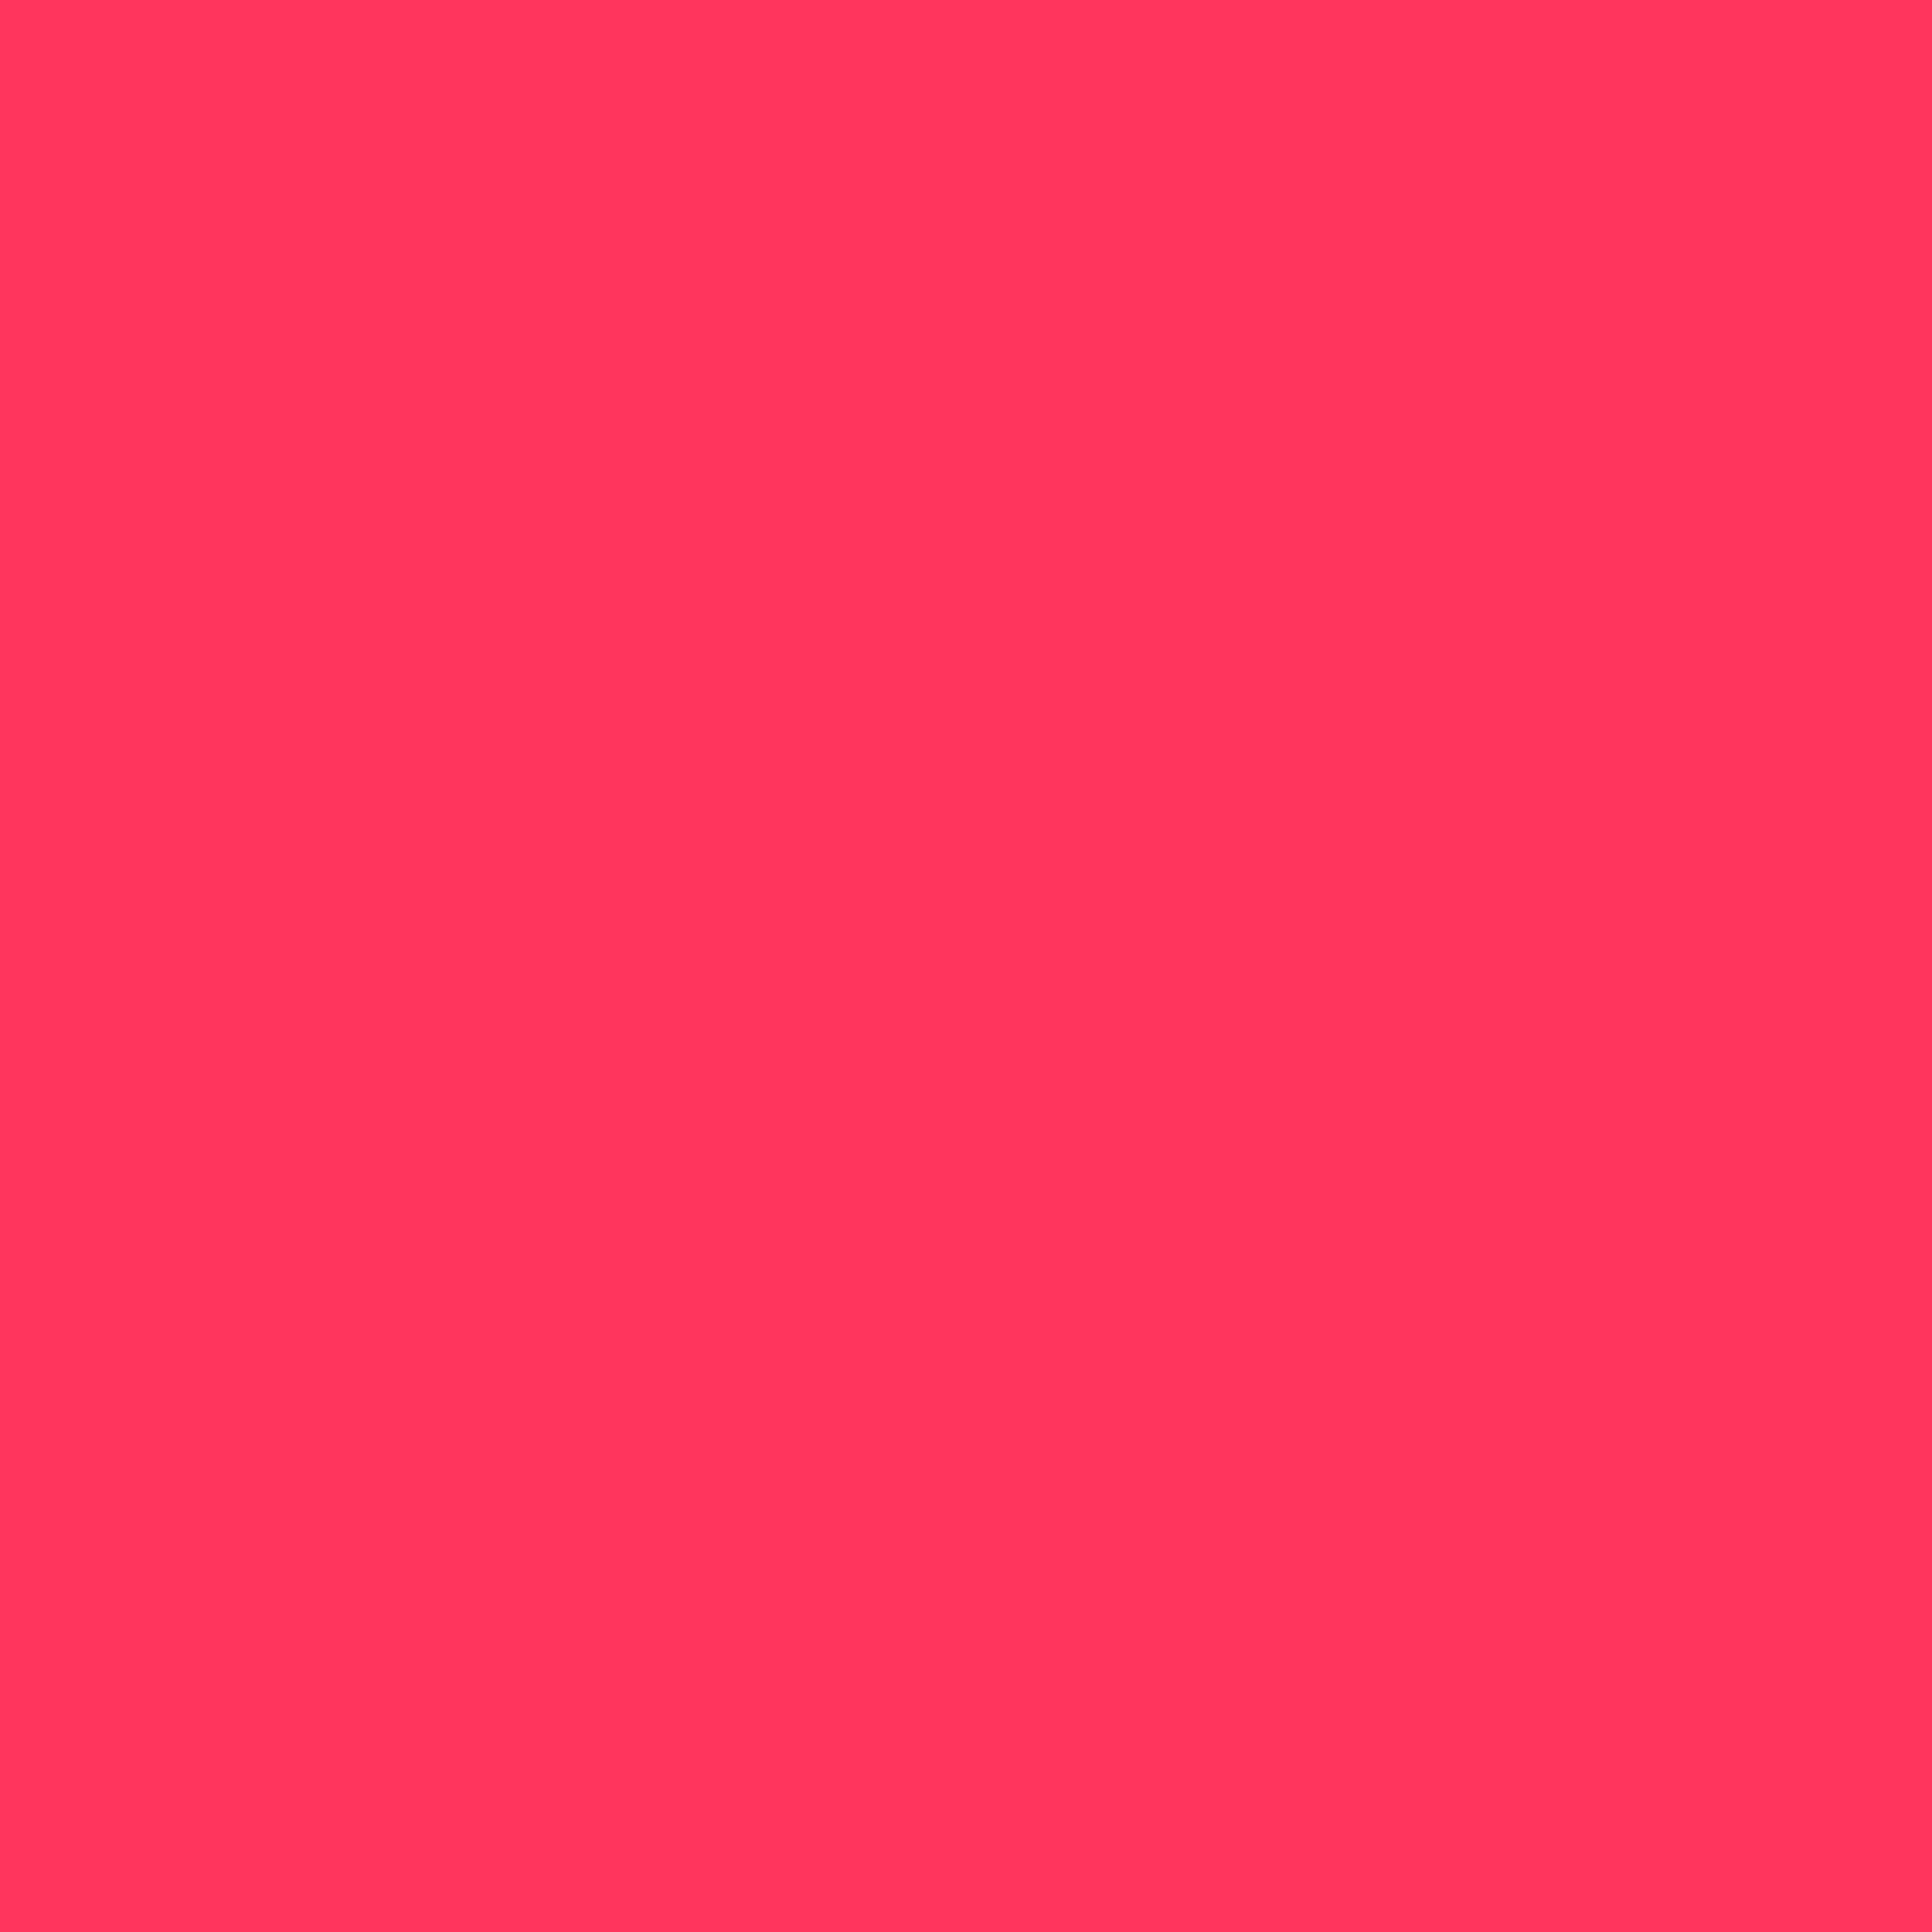 2732x2732 Radical Red Solid Color Background